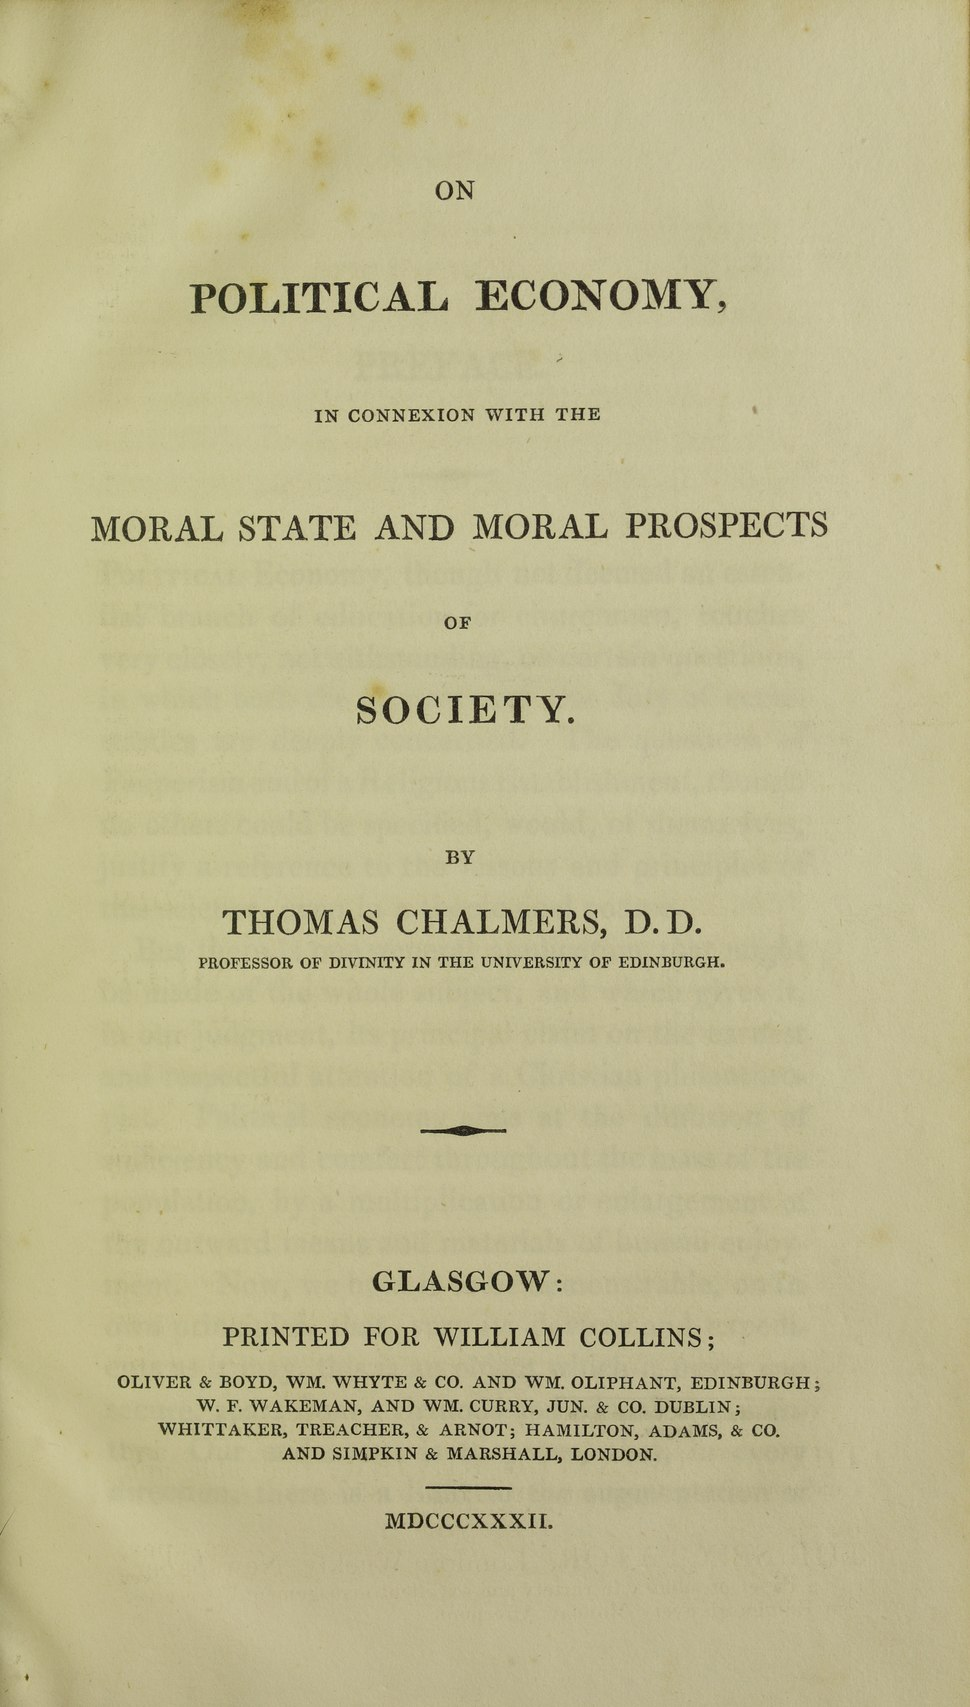 Chalmers - On political economy, 1832 - 5867043